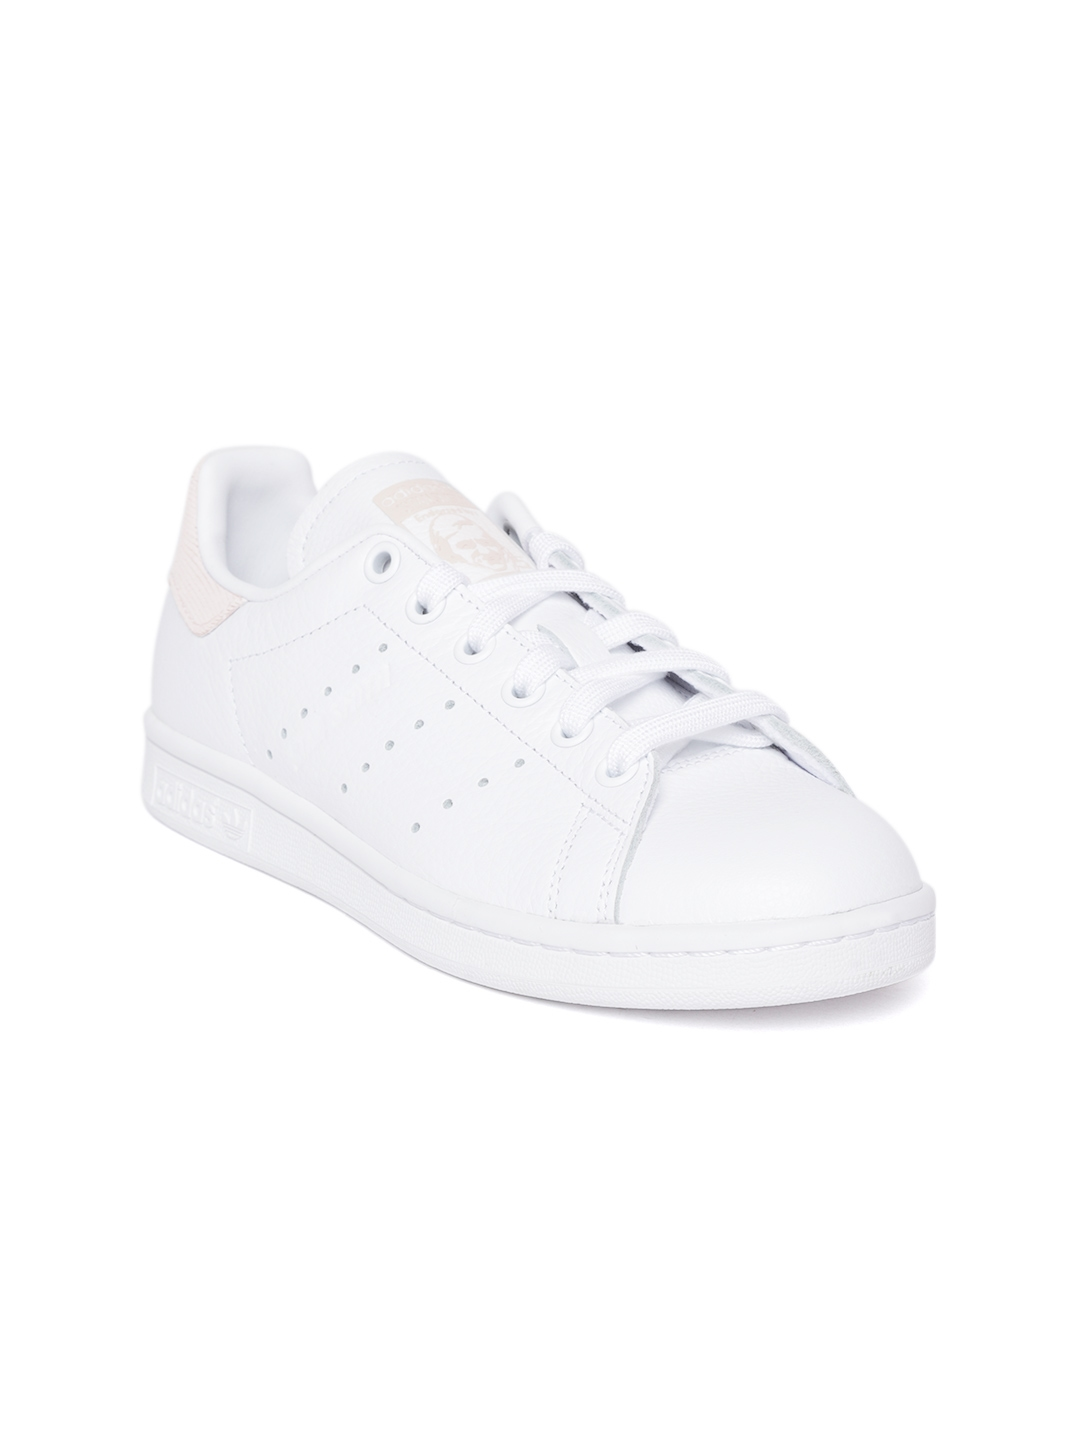 d4cc663409d ADIDAS Originals Women White Stan Smith Leather Perforated Detail Sneakers